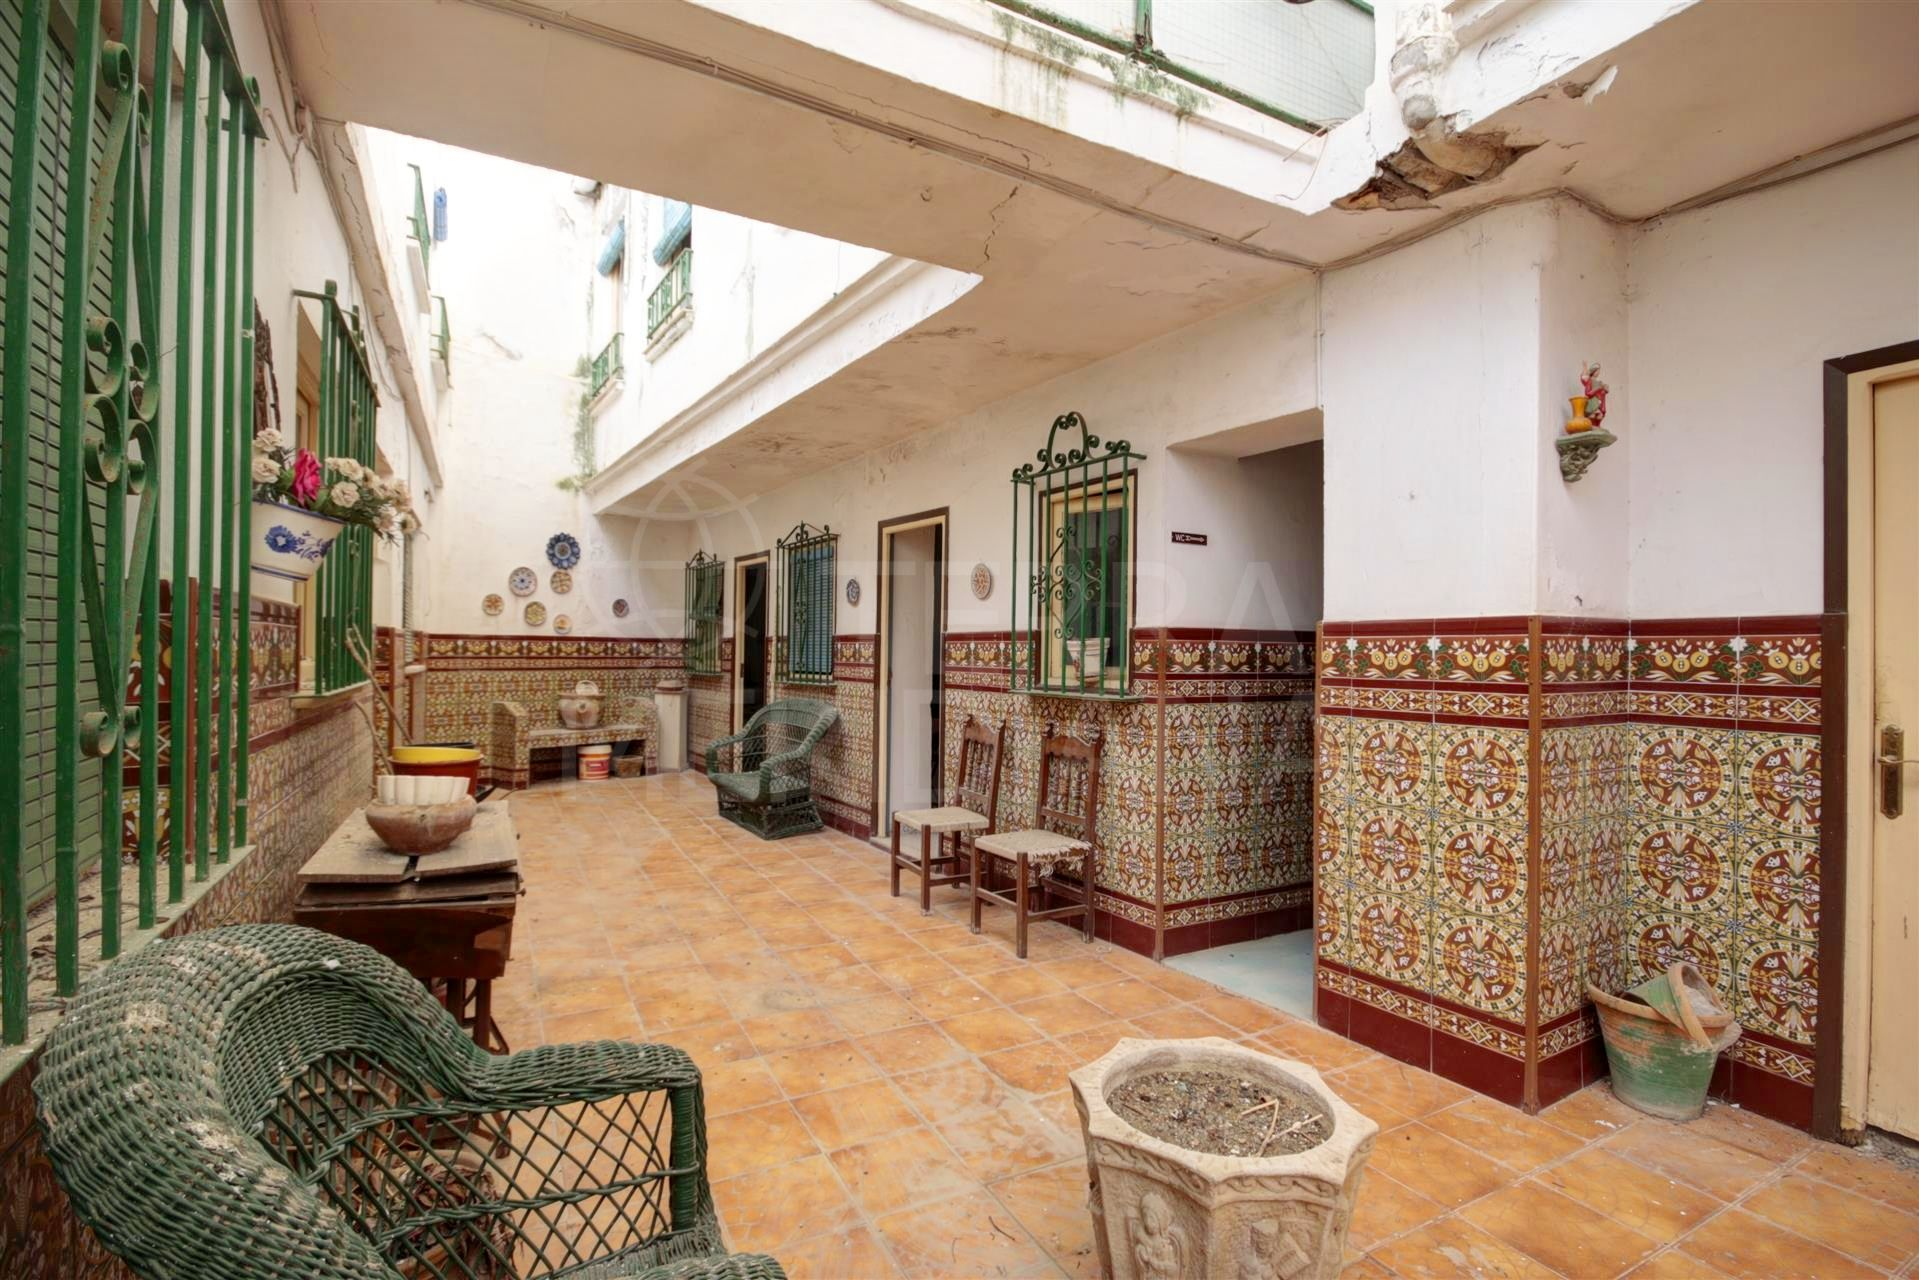 21 bedroom hostel in Estepona old town centre, less than 150m to the beach on a pedestrian street.